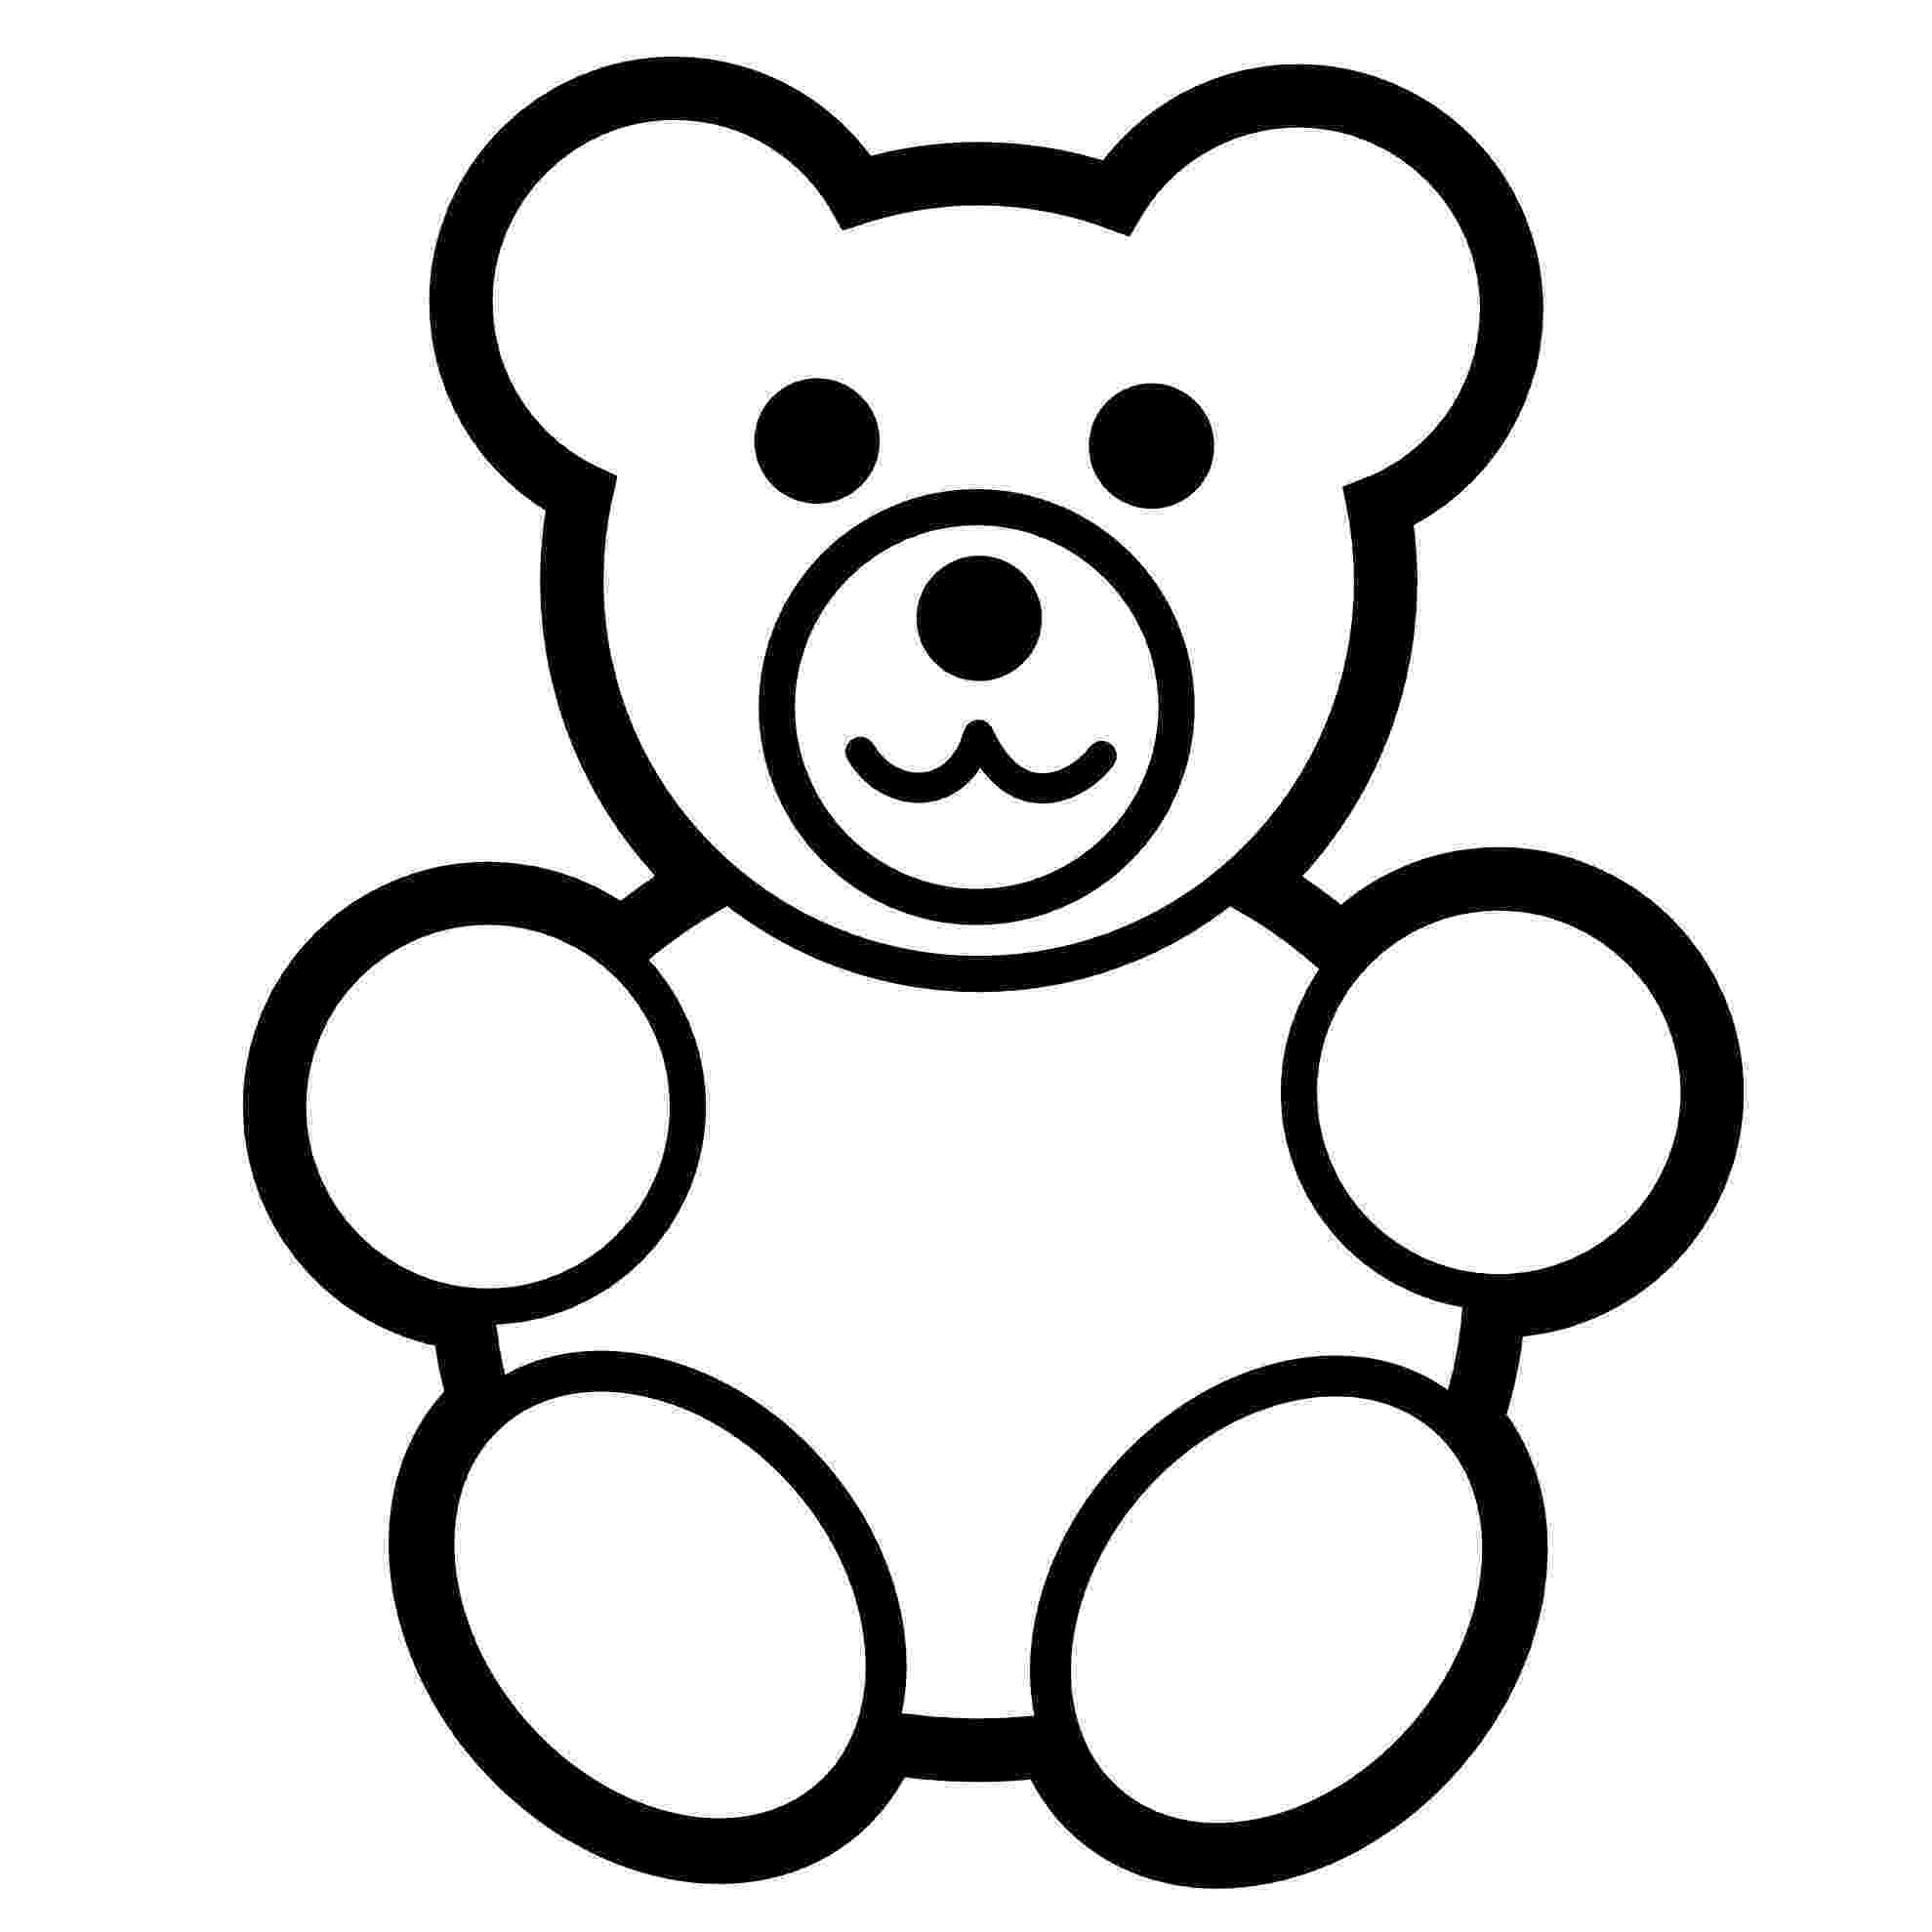 colouring pages of teddy bear printable teddy bear coloring pages for kids cool2bkids bear teddy pages of colouring